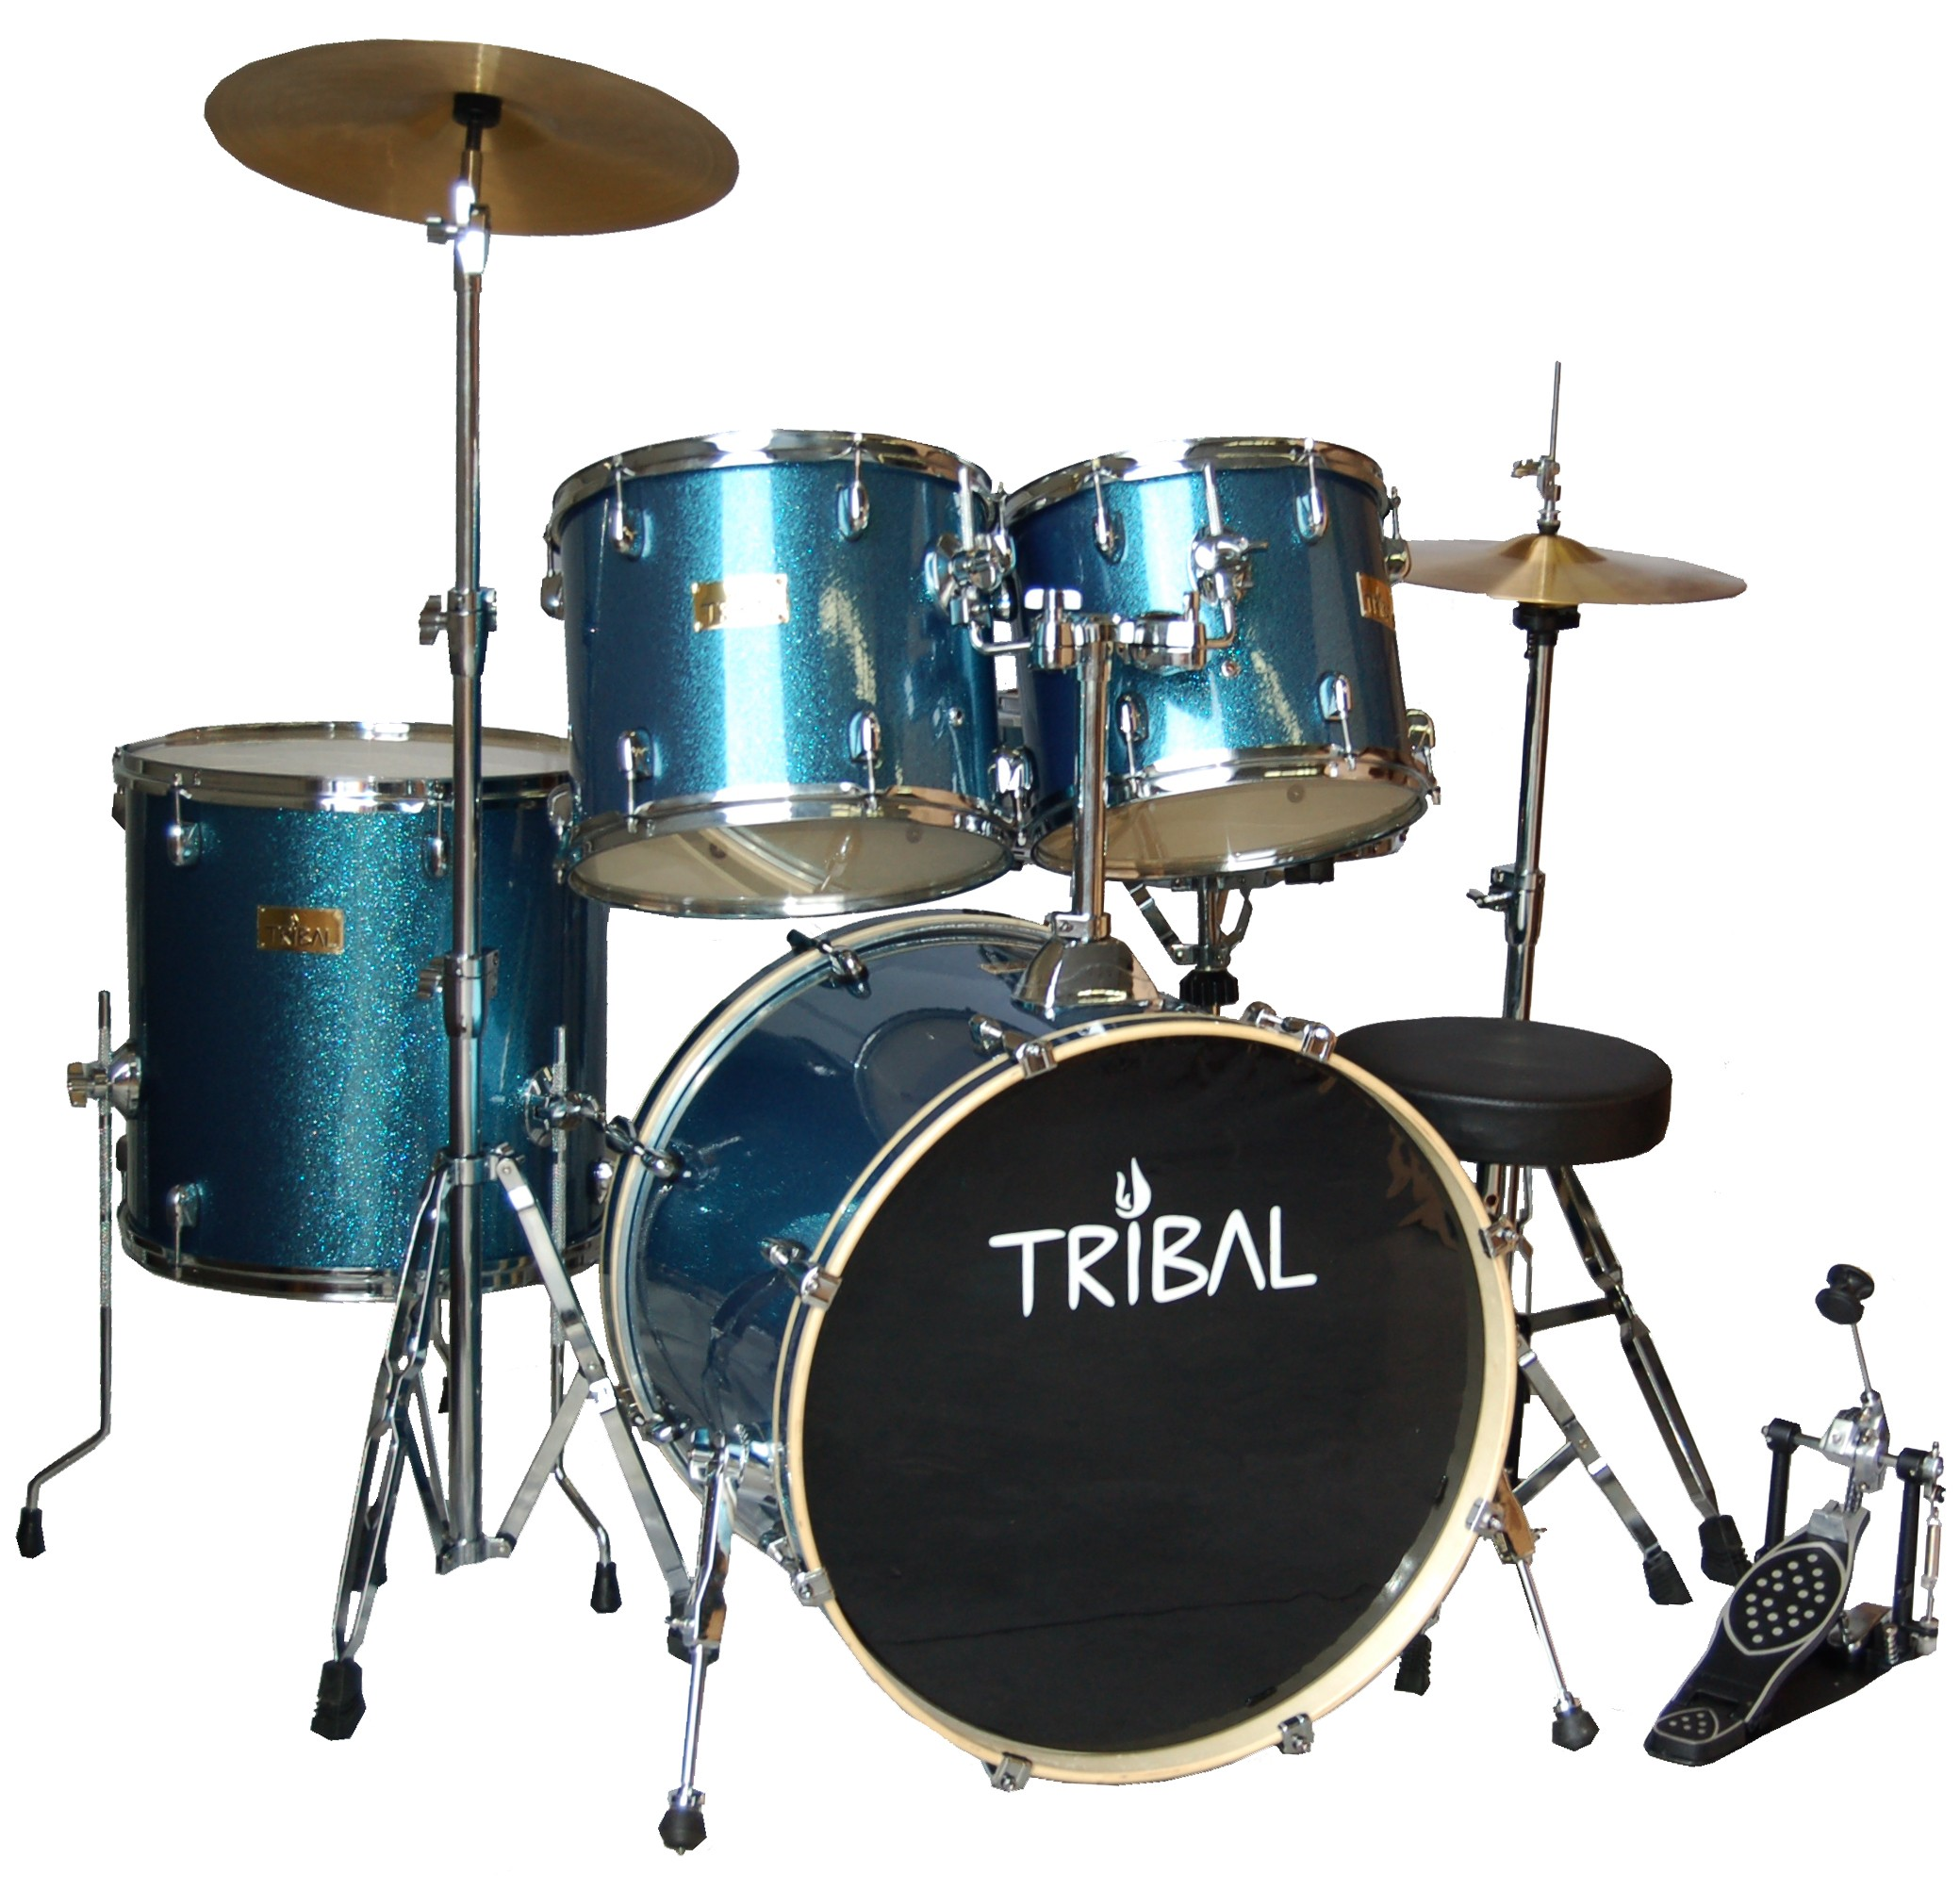 TRIBAL LANCE 801 SERIES – VINTAGE BLUE